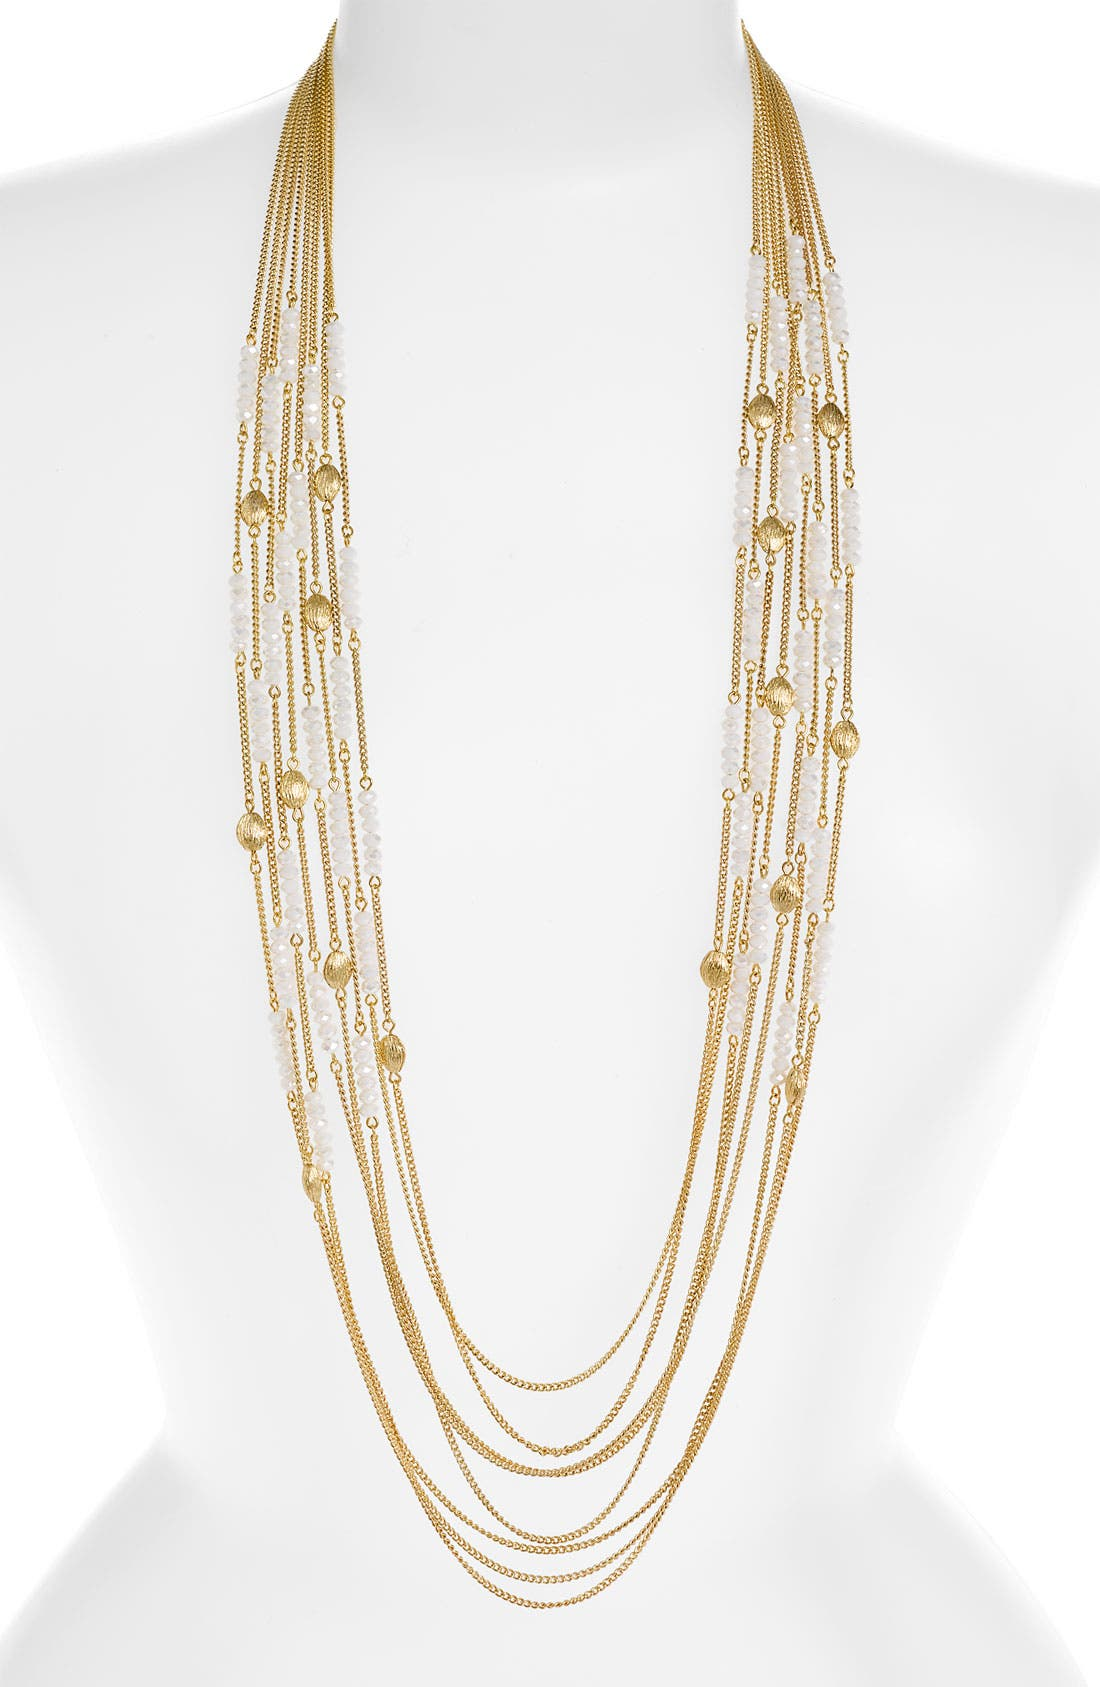 Main Image - Nordstrom Multi Row Bead Necklace